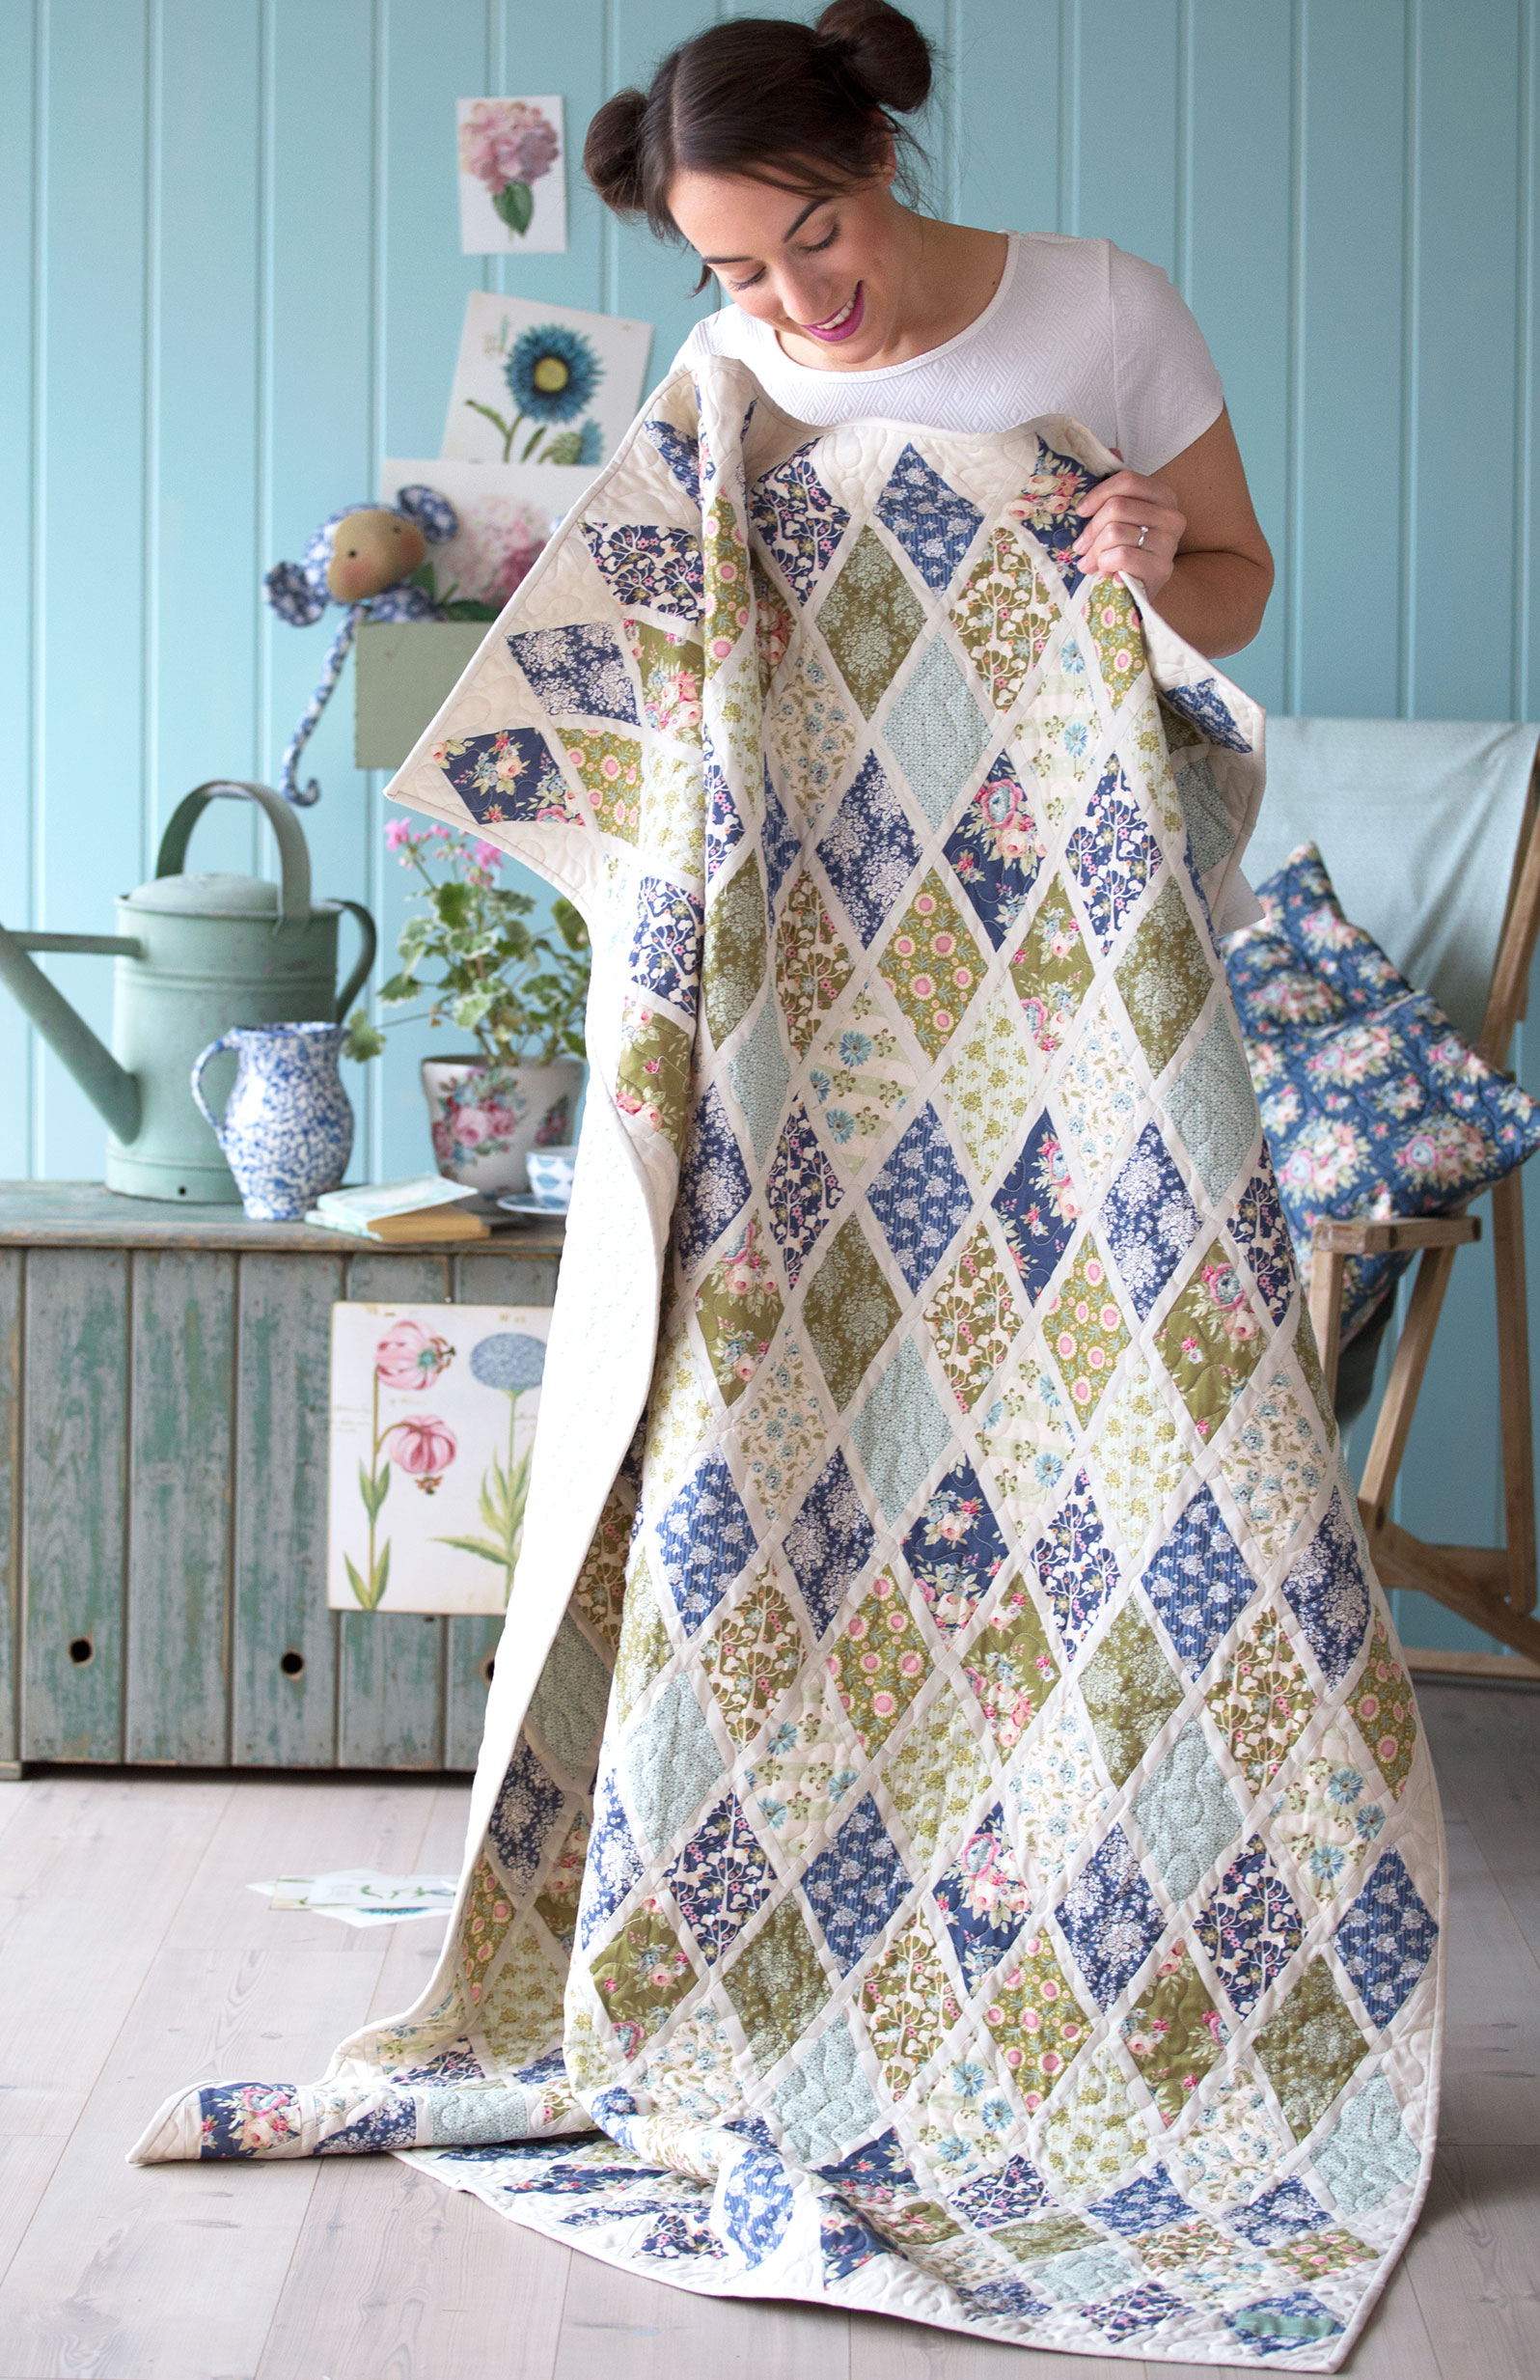 Fons and Porter's Love of Quilting Magazine Nov/Dec 2015 Cozy Winter Patterns